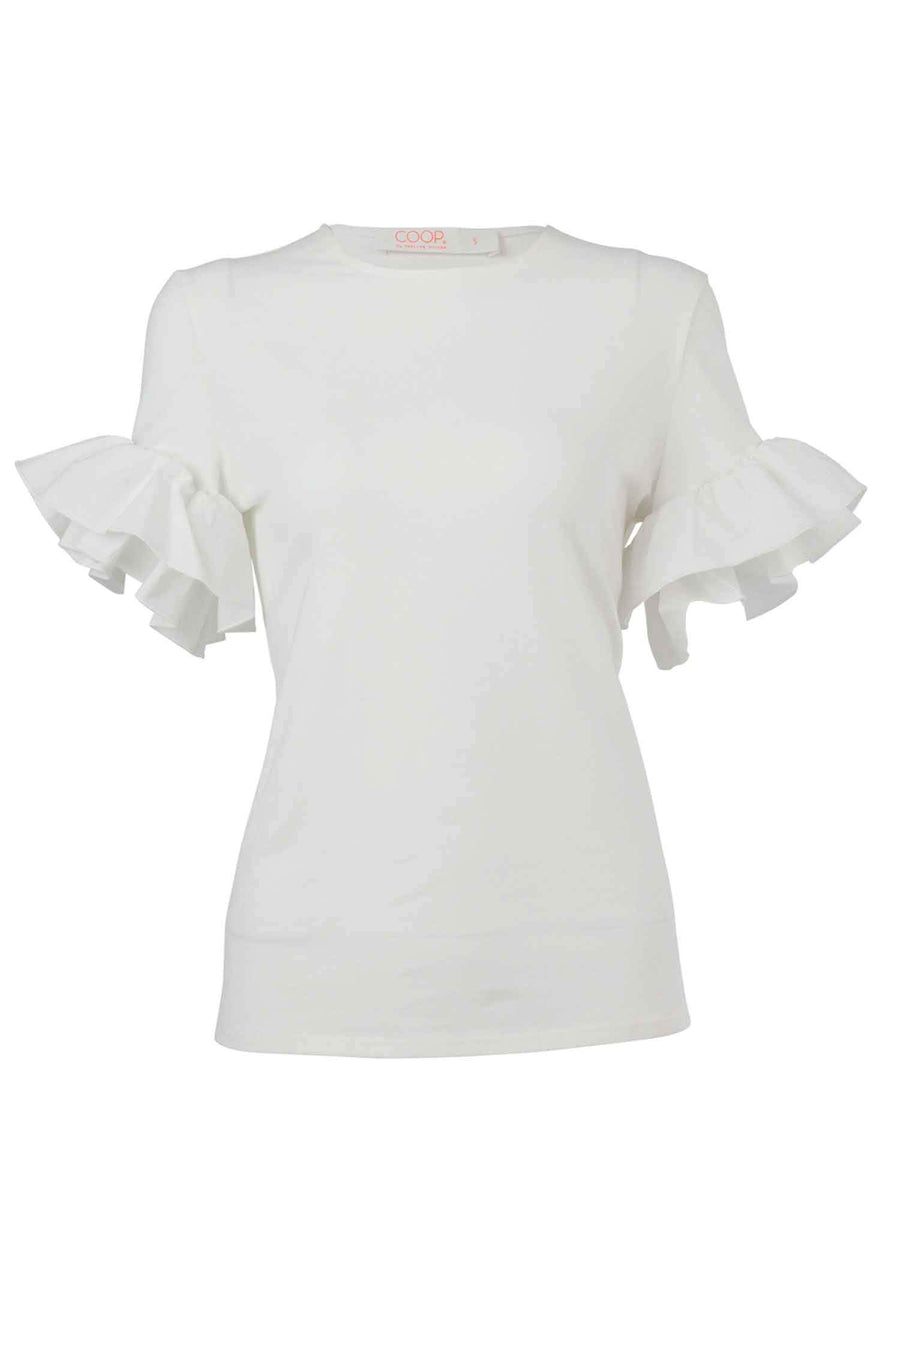 Free Frill Top in White by Coop Frockaholics.com